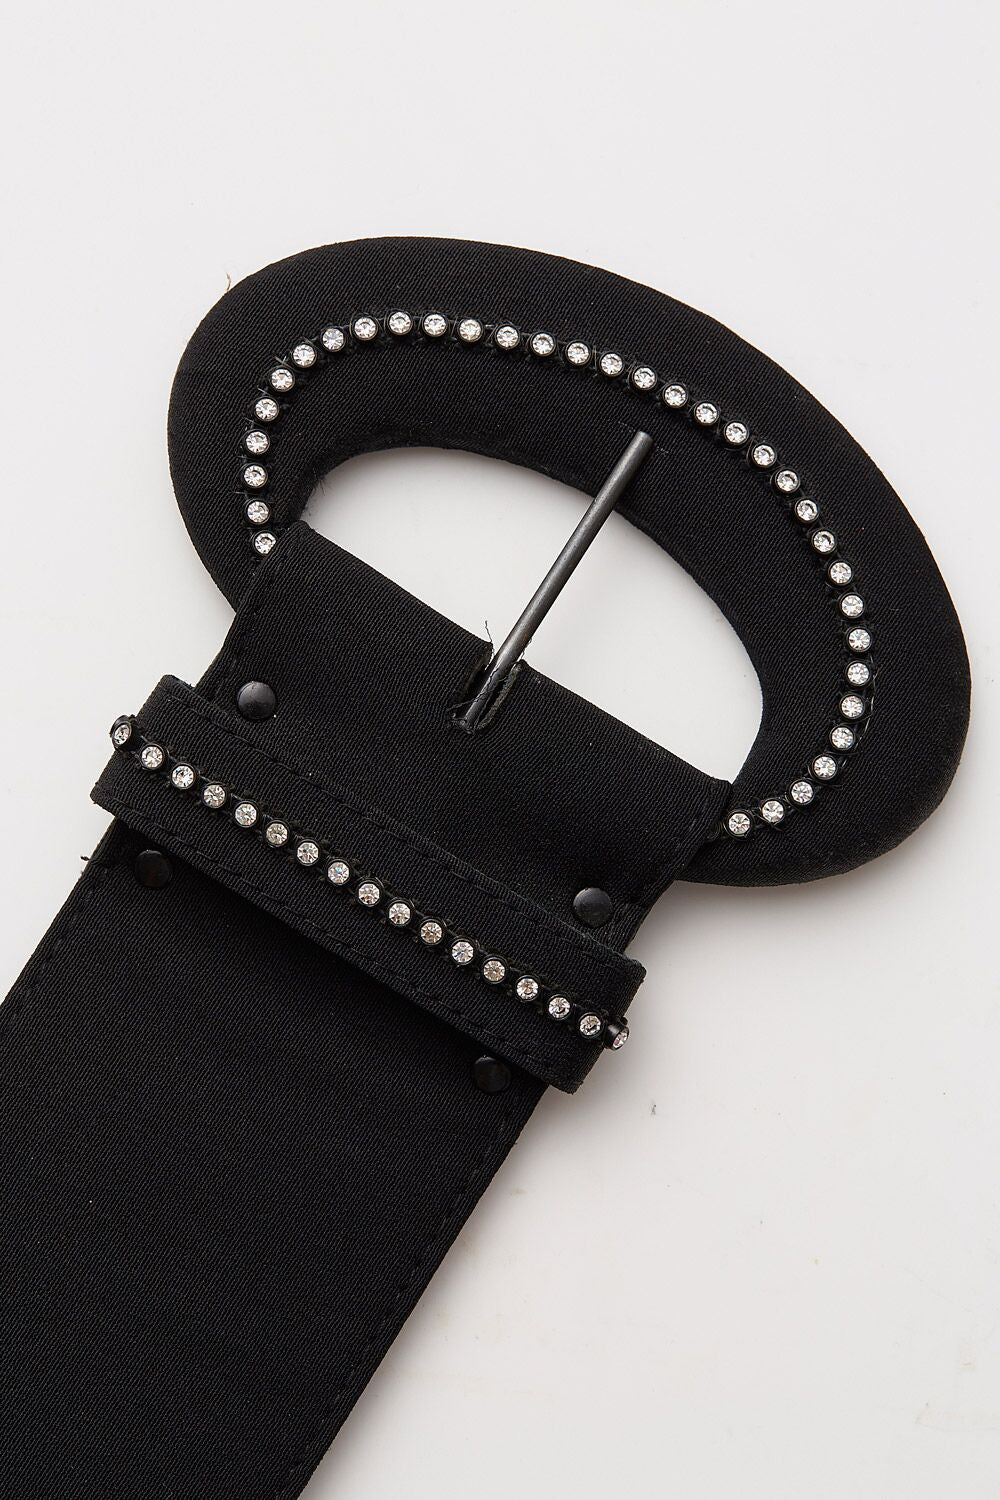 Vintage<br>1980's extra wide black belt with diamante studded buckle